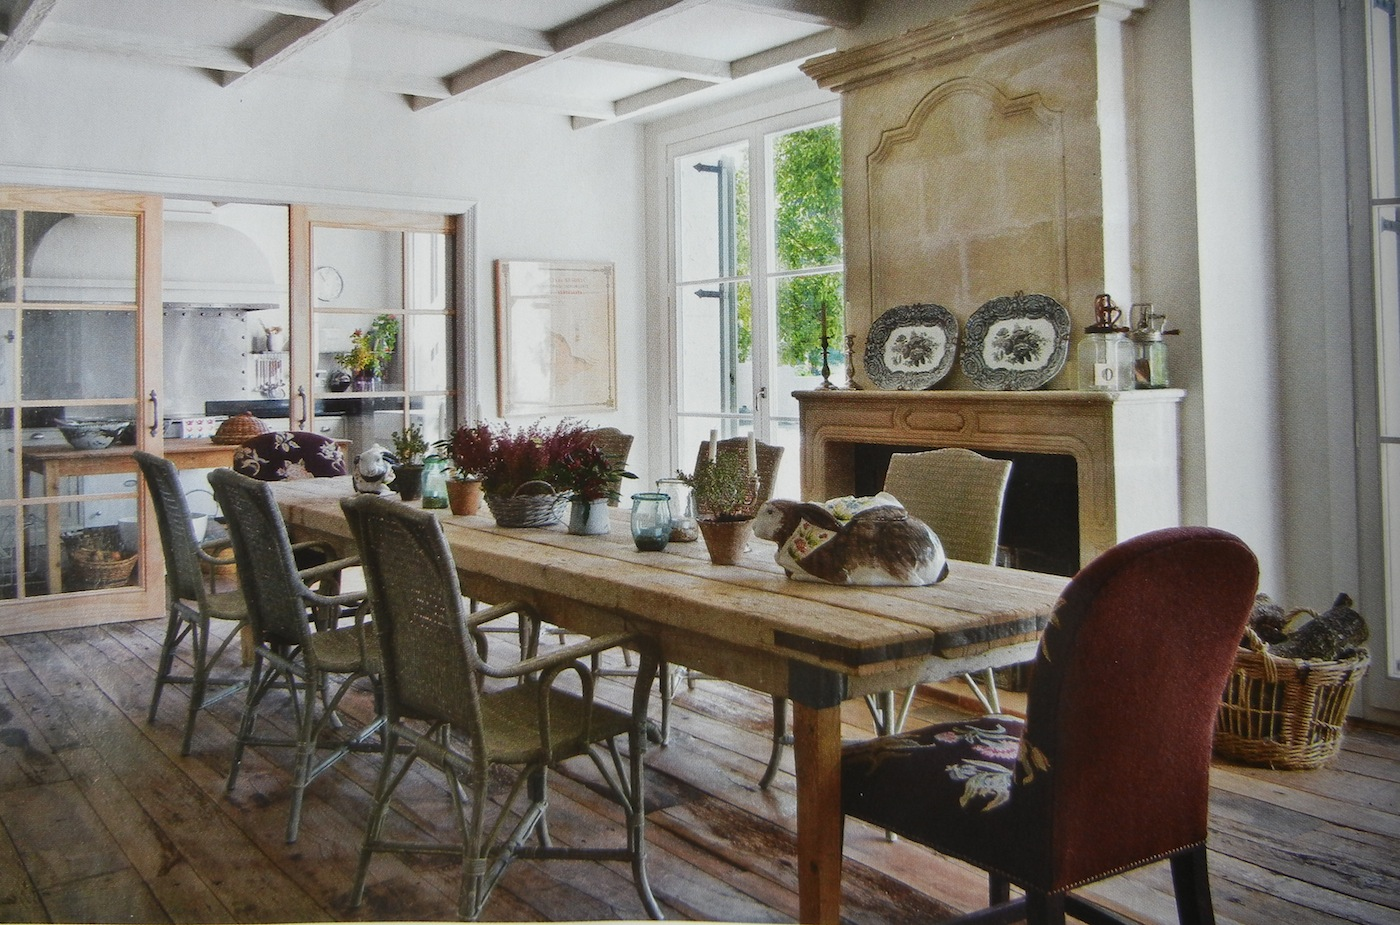 Auction decorating rustic dining tables in spain for Dining room ideas rustic